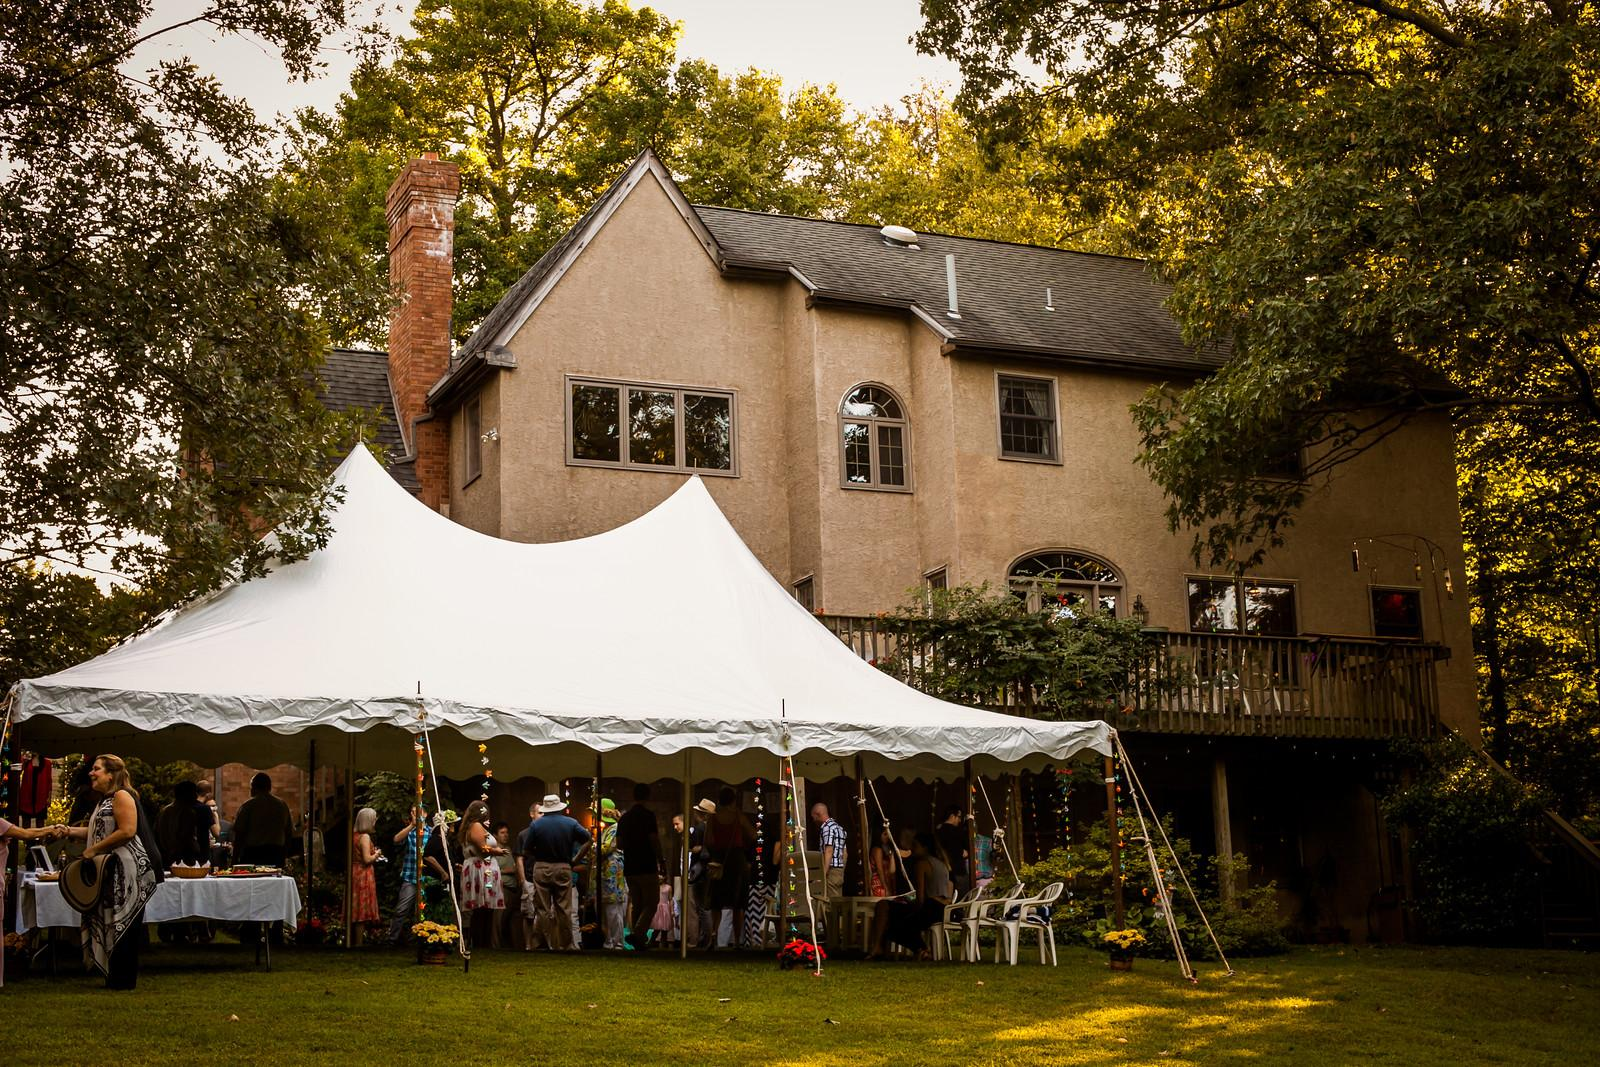 MIL had the foresight to rent a tent in case of rain or too much shine. Photo by Wide Eyed Studios